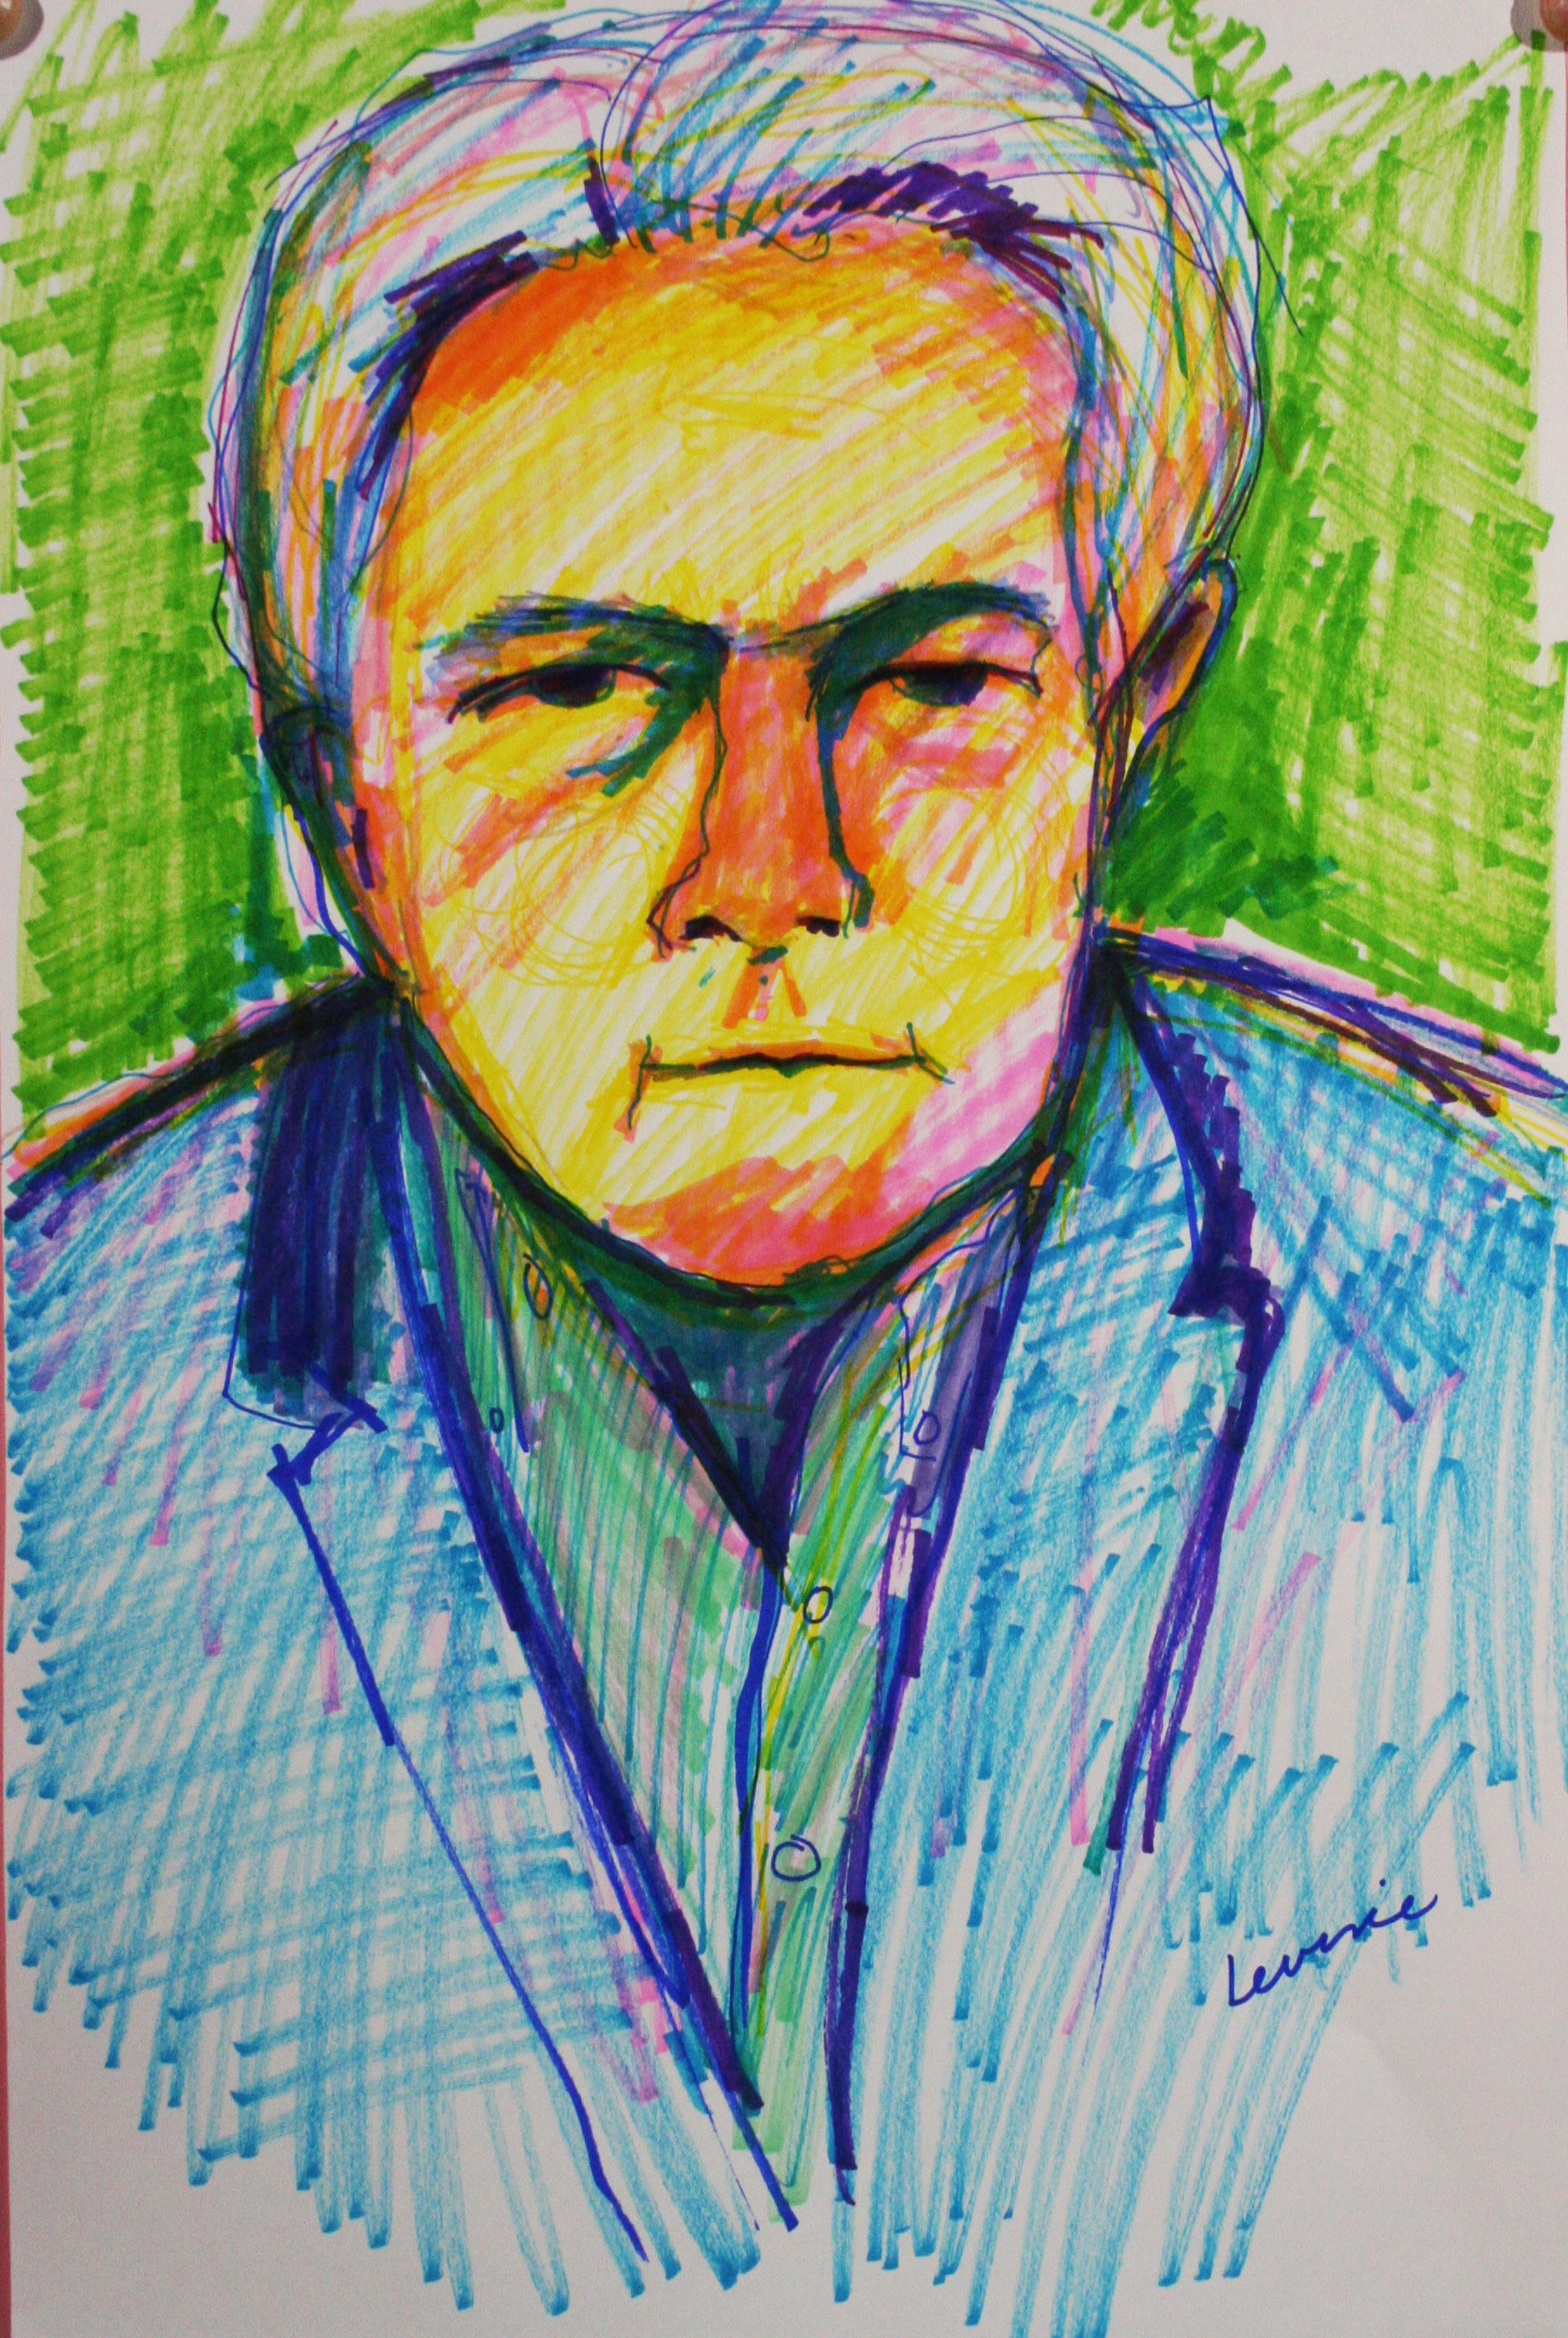 Phyllis Peterson Levine did this 2-hour marker drawing.